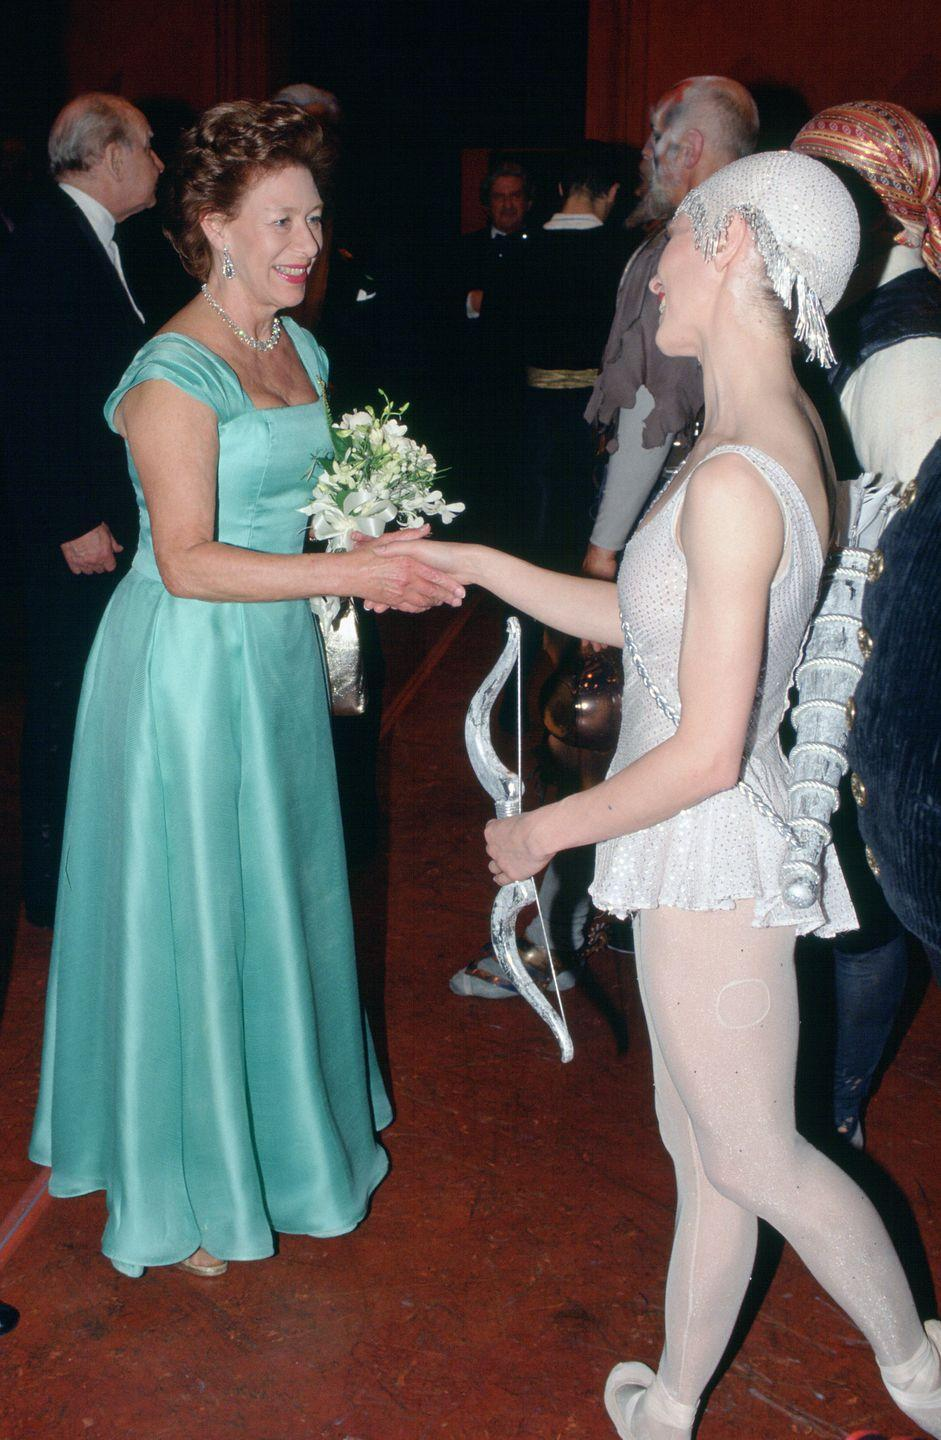 <p>Princess Margaret was a lifelong ballet enthusiast. Here she is making introductions as the president of the Royal Ballet in 1993. </p>